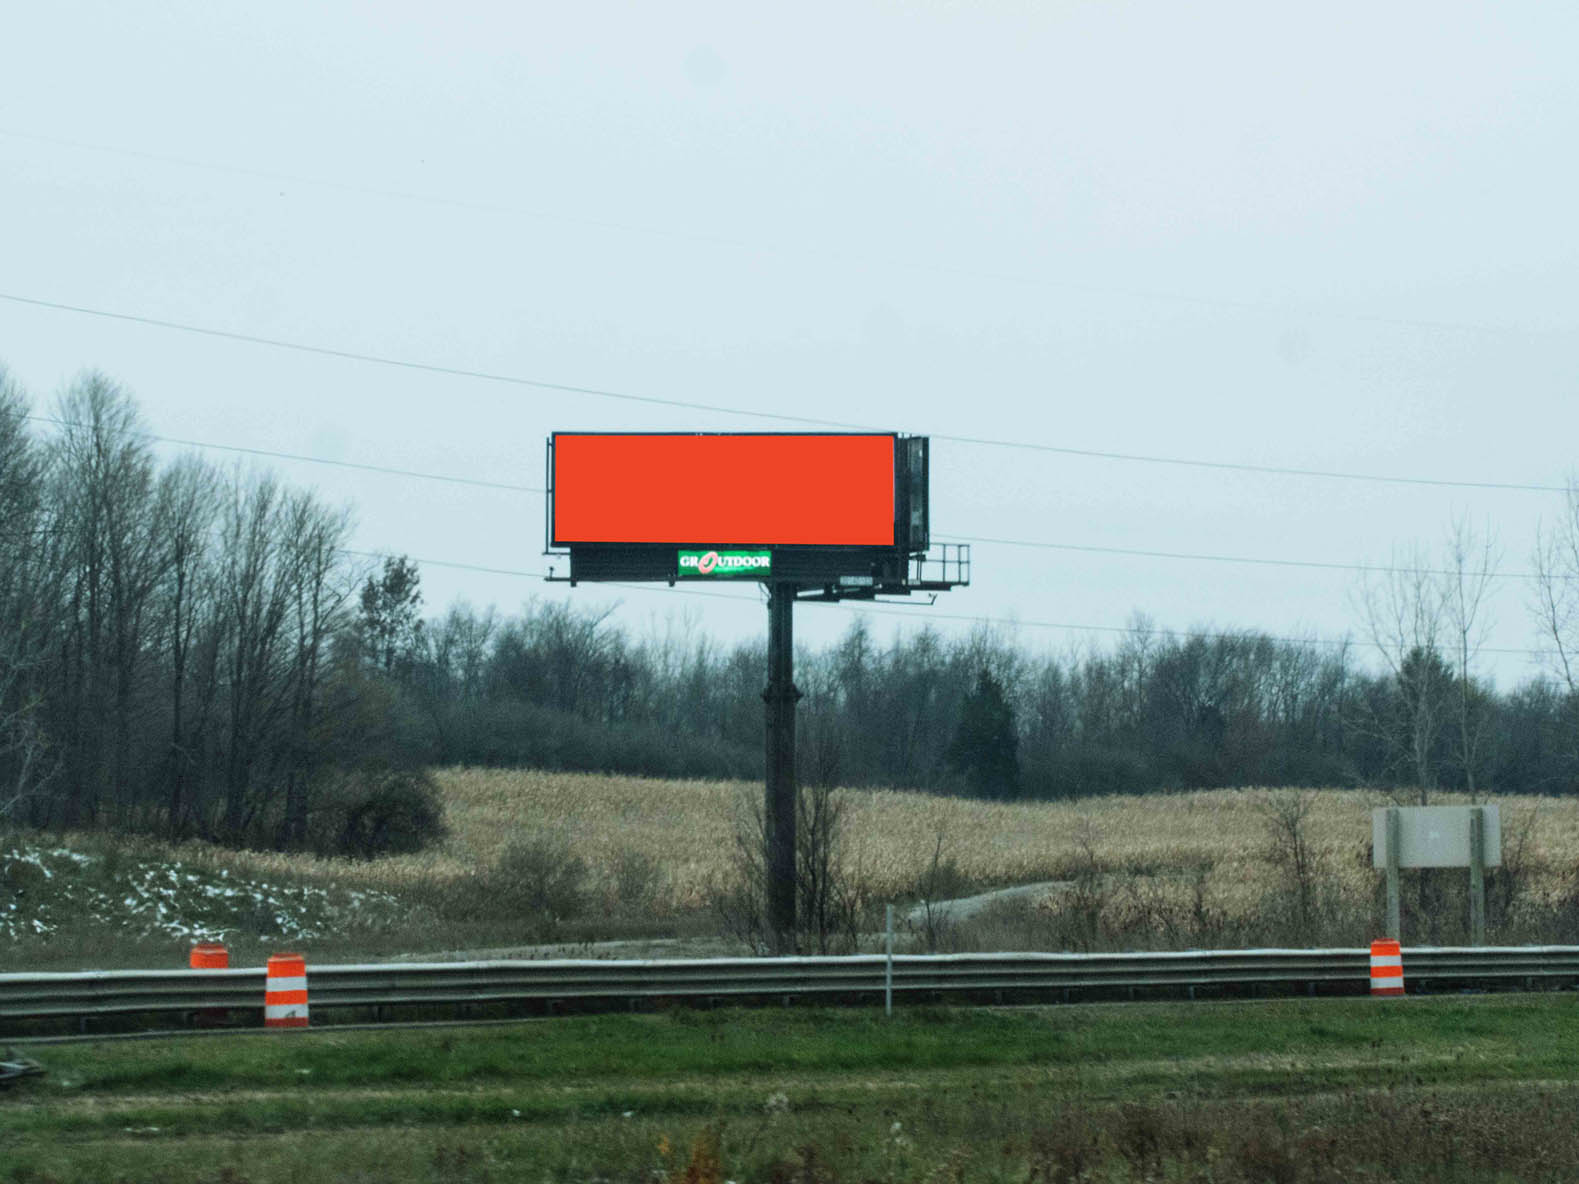 Billboard 335 East (10 x 30) - Geopath: 30655447